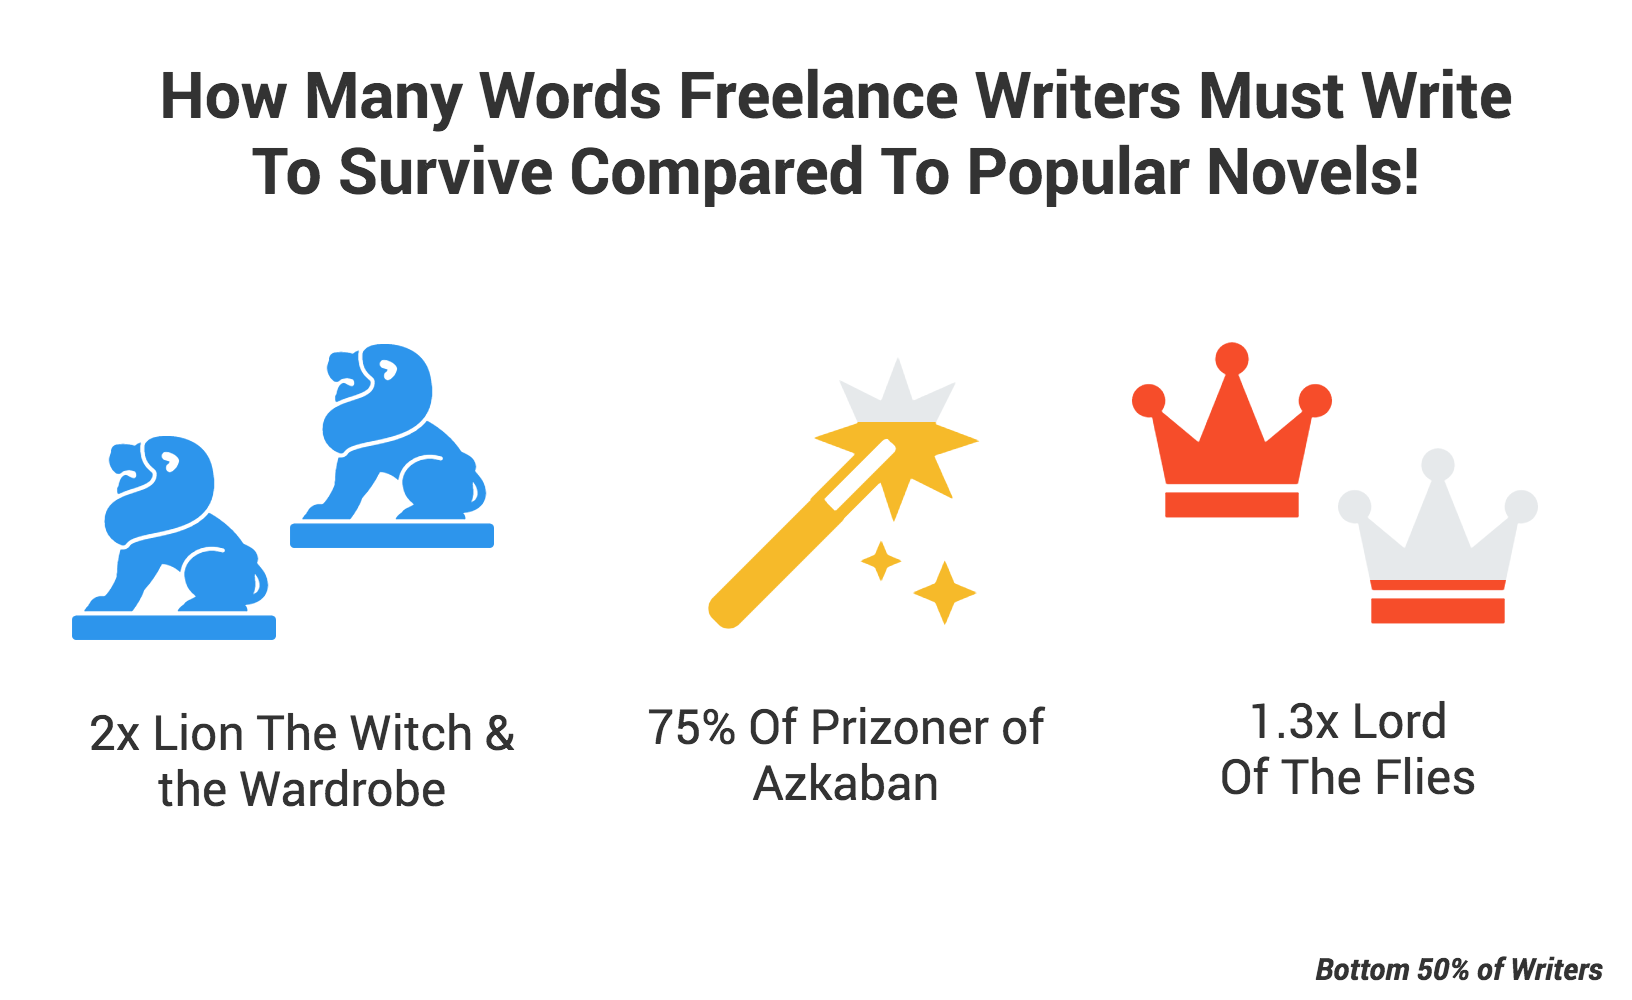 Bottom 50% of writers word length compared to books